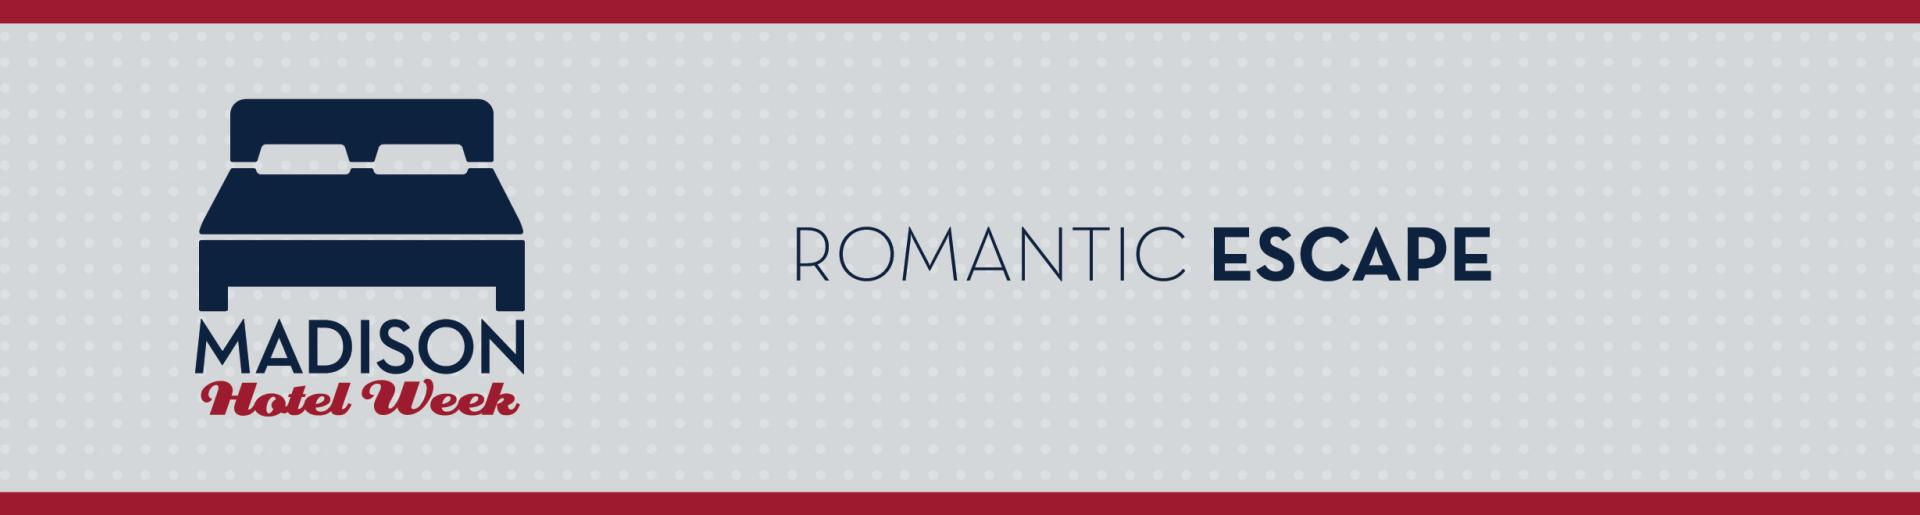 Madison Hotel Week: Romantic